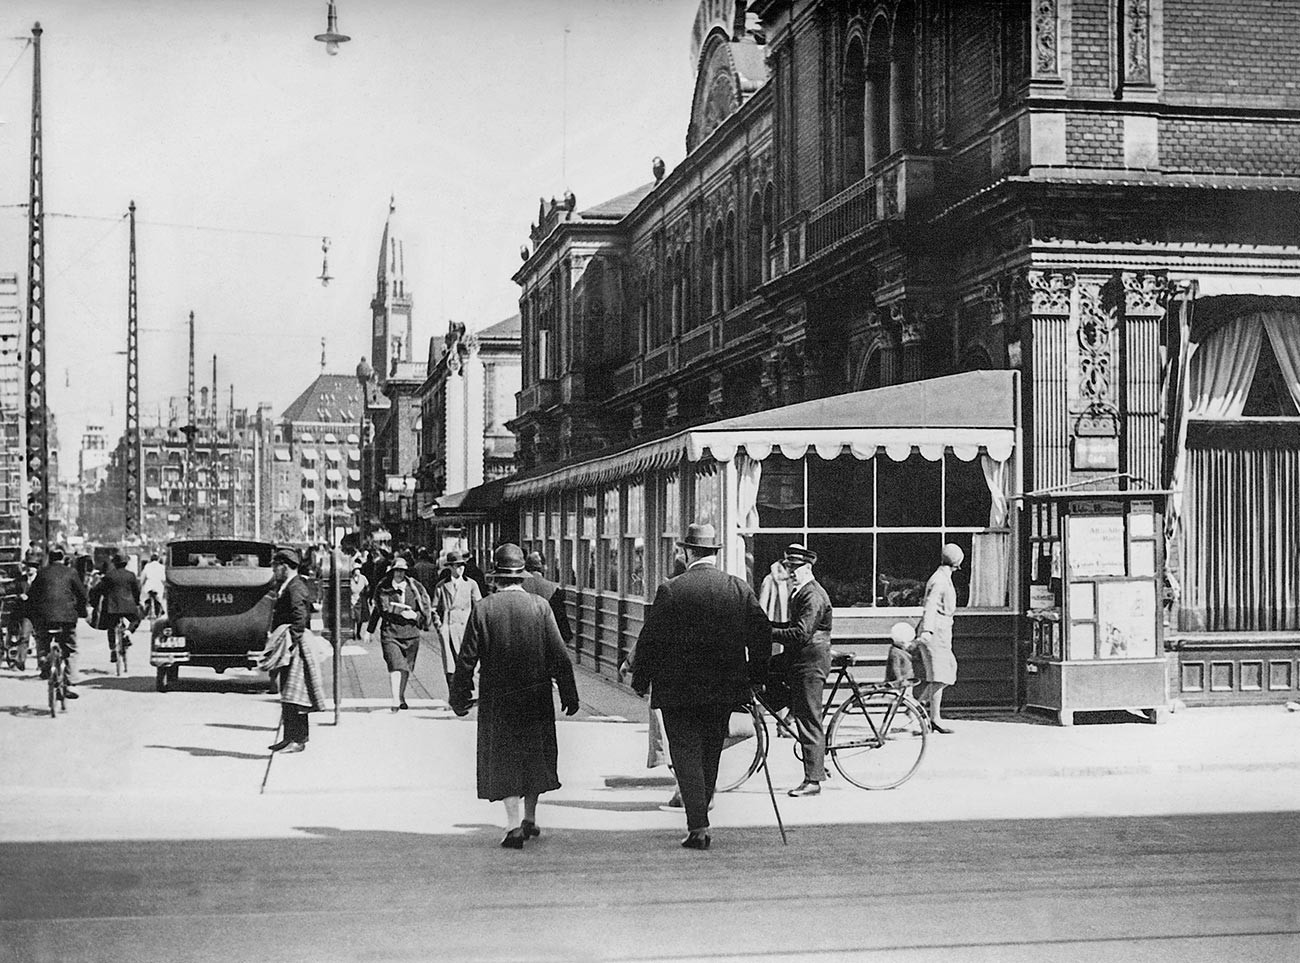 Rue animée de Copenhague, 1931